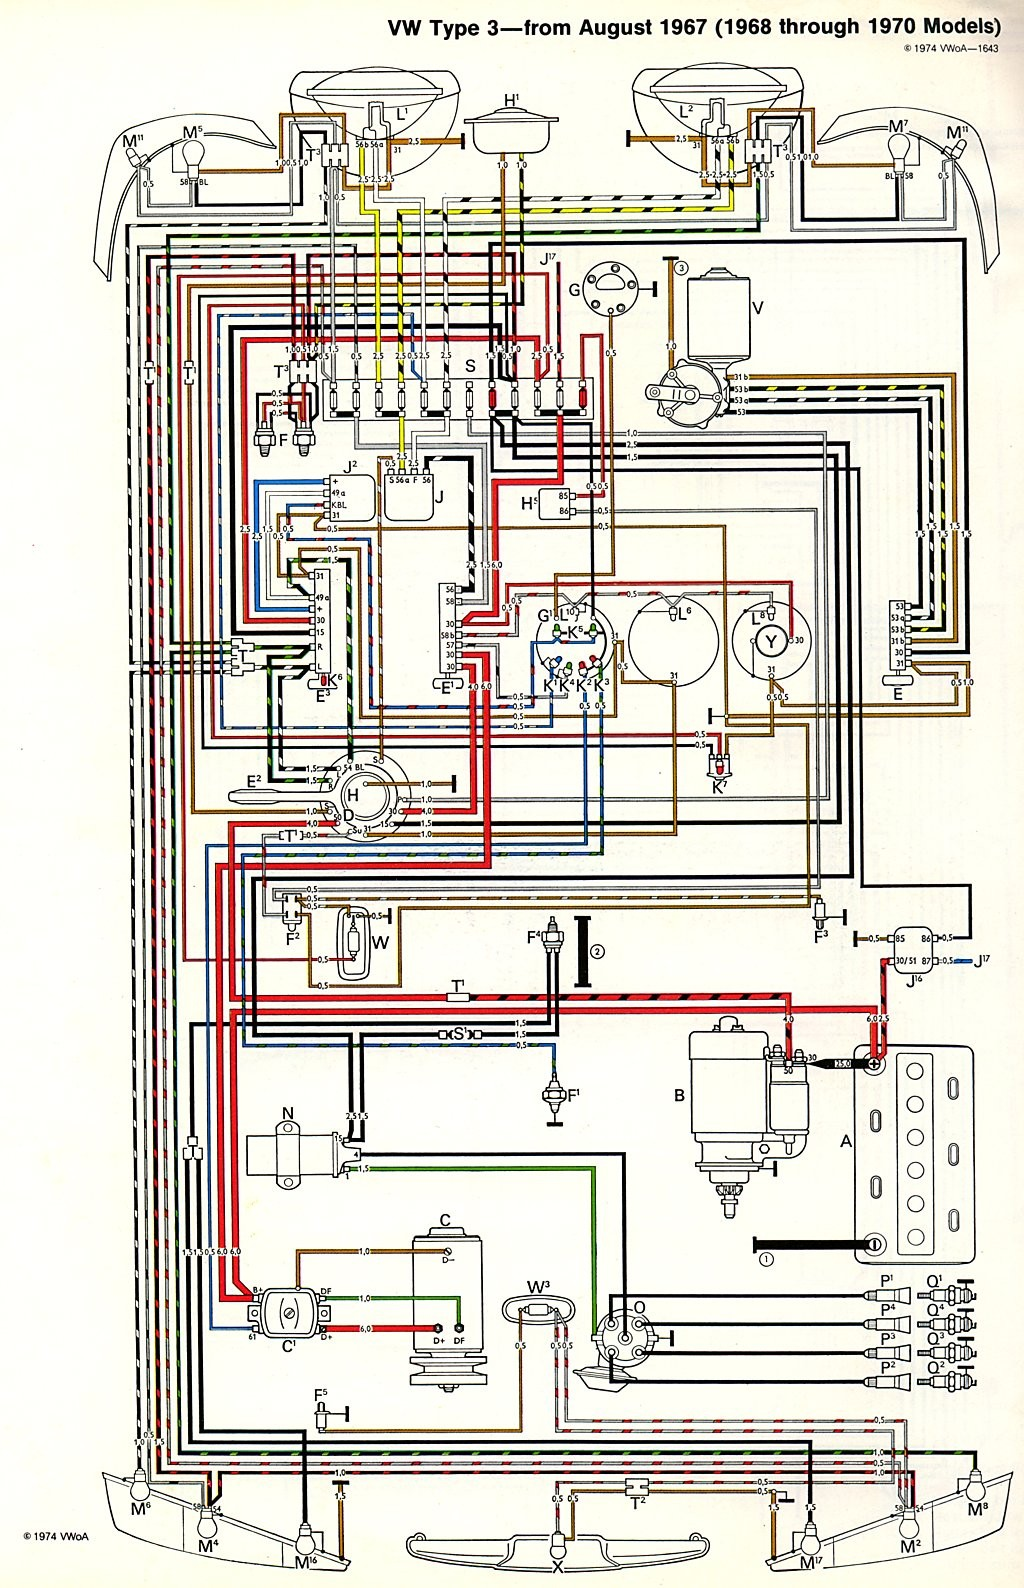 Elegant 1968 Vw Beetle Wiring Diagram Image Harness Rh Vwispwest 1972